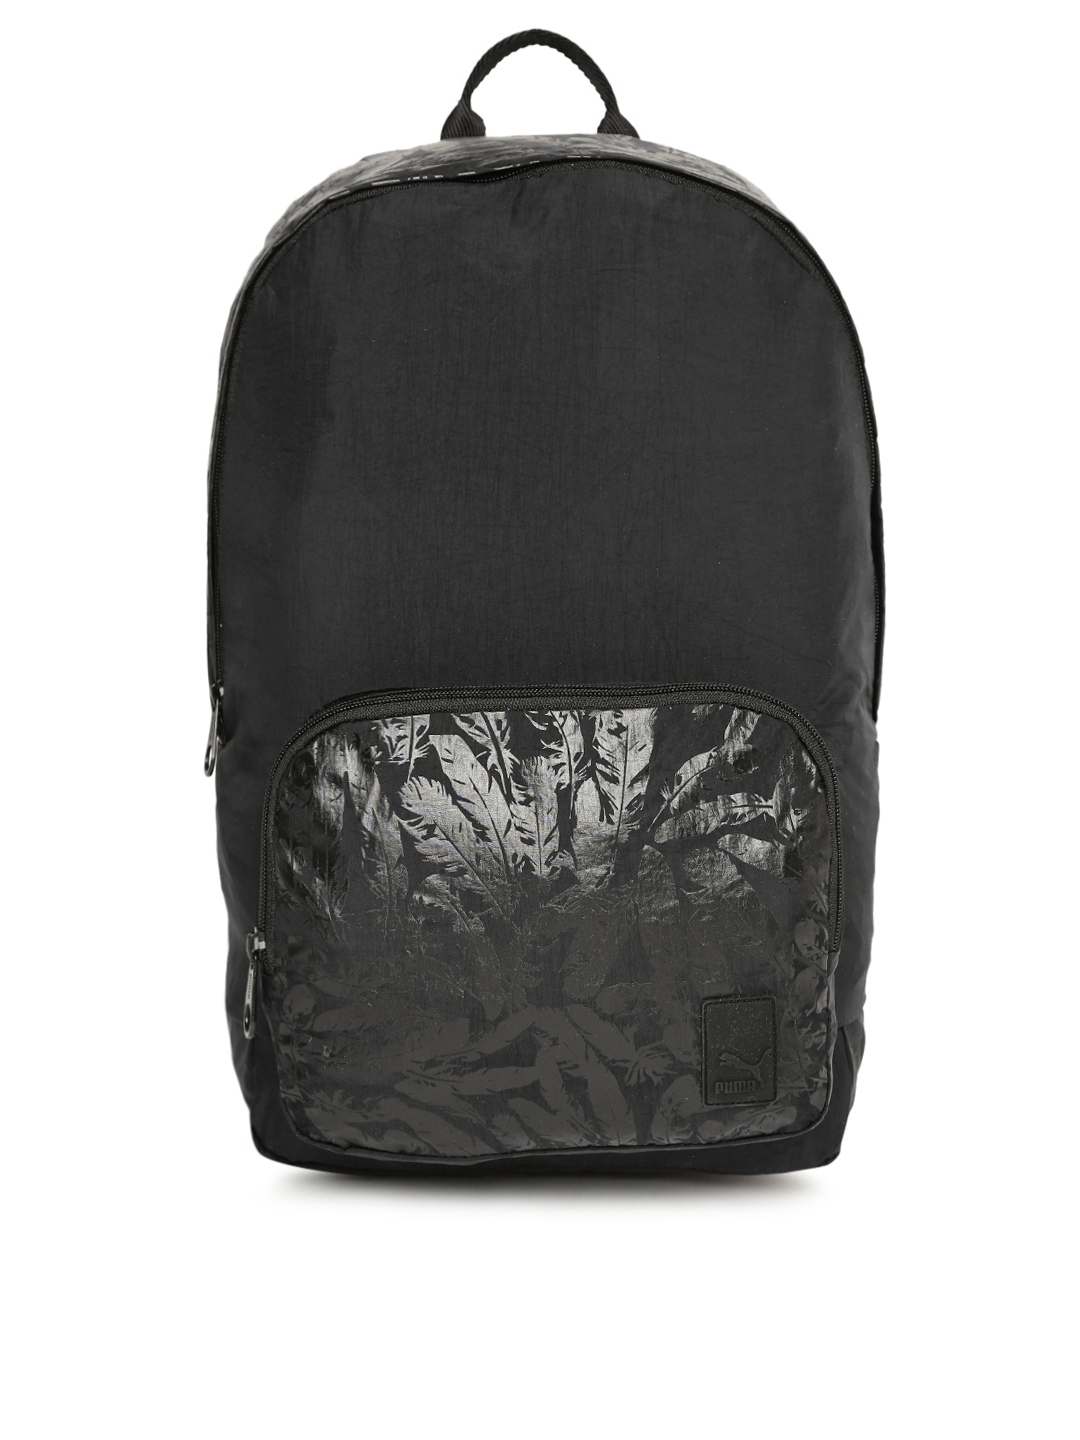 d1c295fa4662 Buy Puma Unisex Black Prime Printed Backpack - Backpacks for Unisex ...